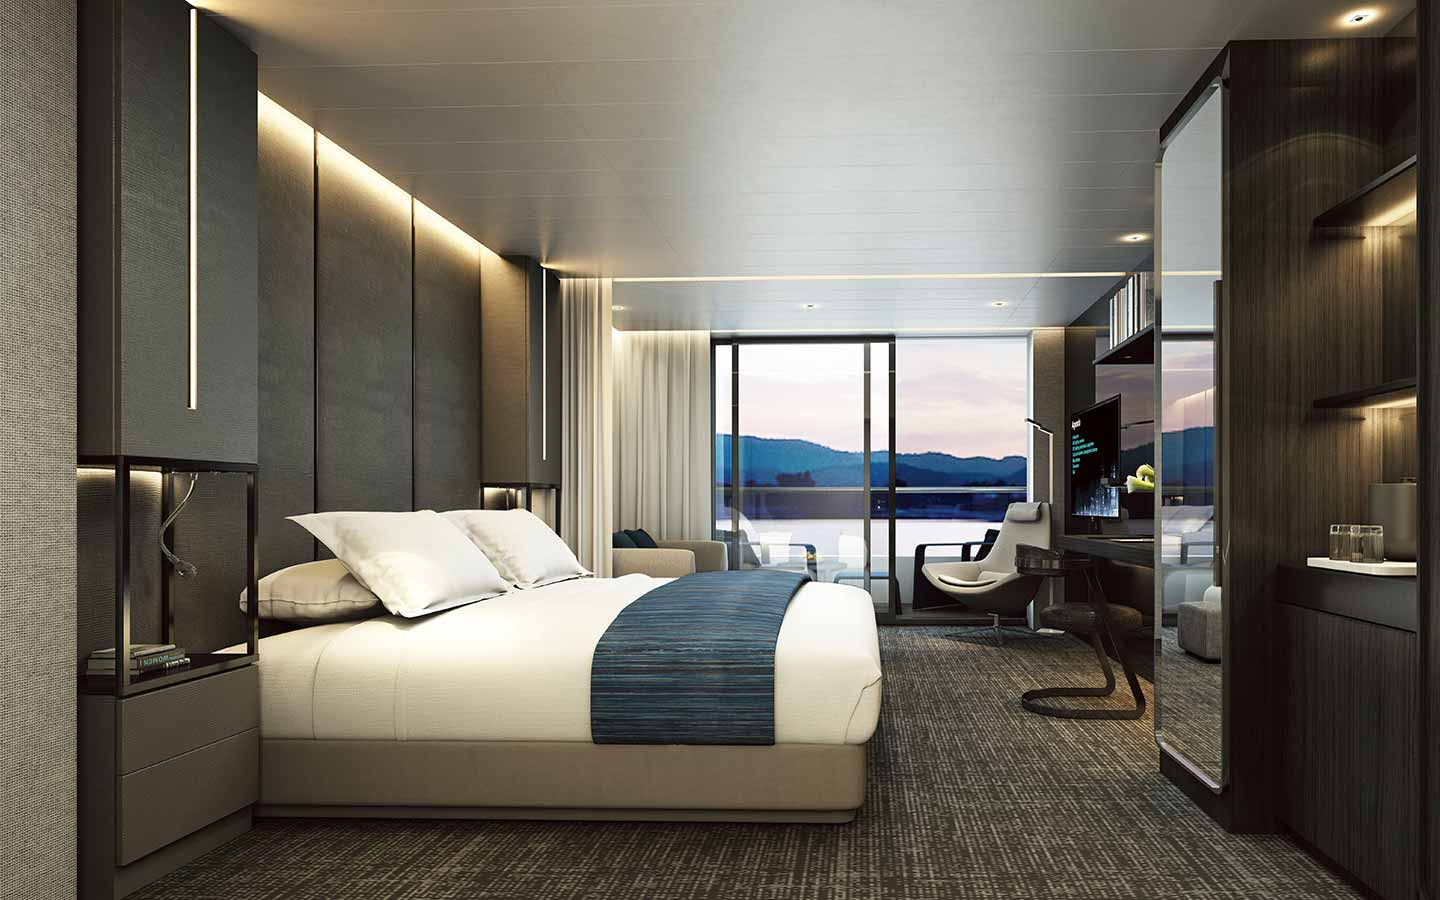 luxury bedroom suite on Scenic Eclipse Arctic expedition cruise with open balcony looking out into the Arctic